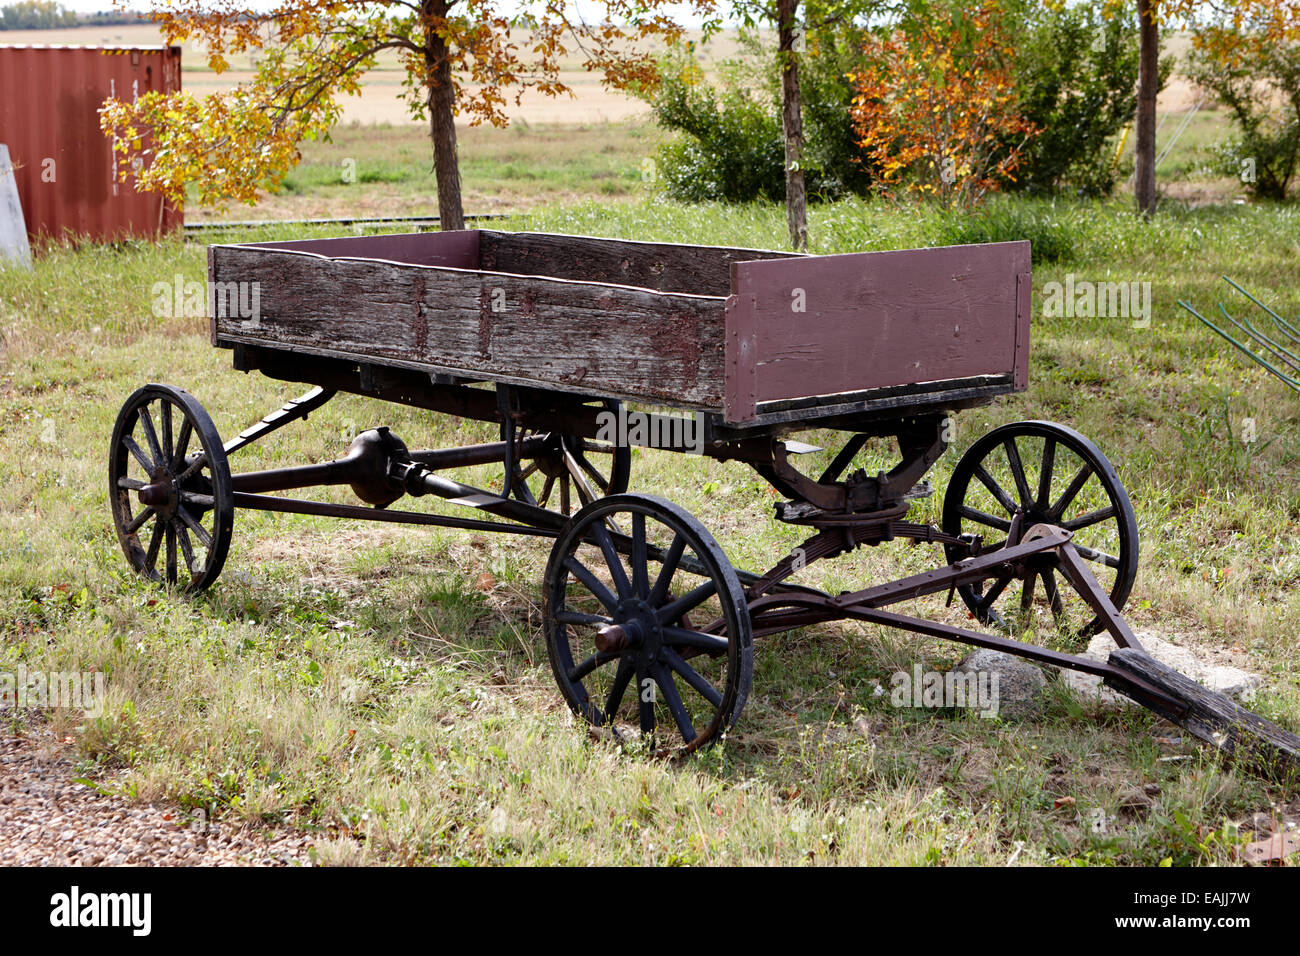 old wooden and metal farm wagon made from vehicle wheels and axle in depression era leader Saskatchewan Canada - Stock Image